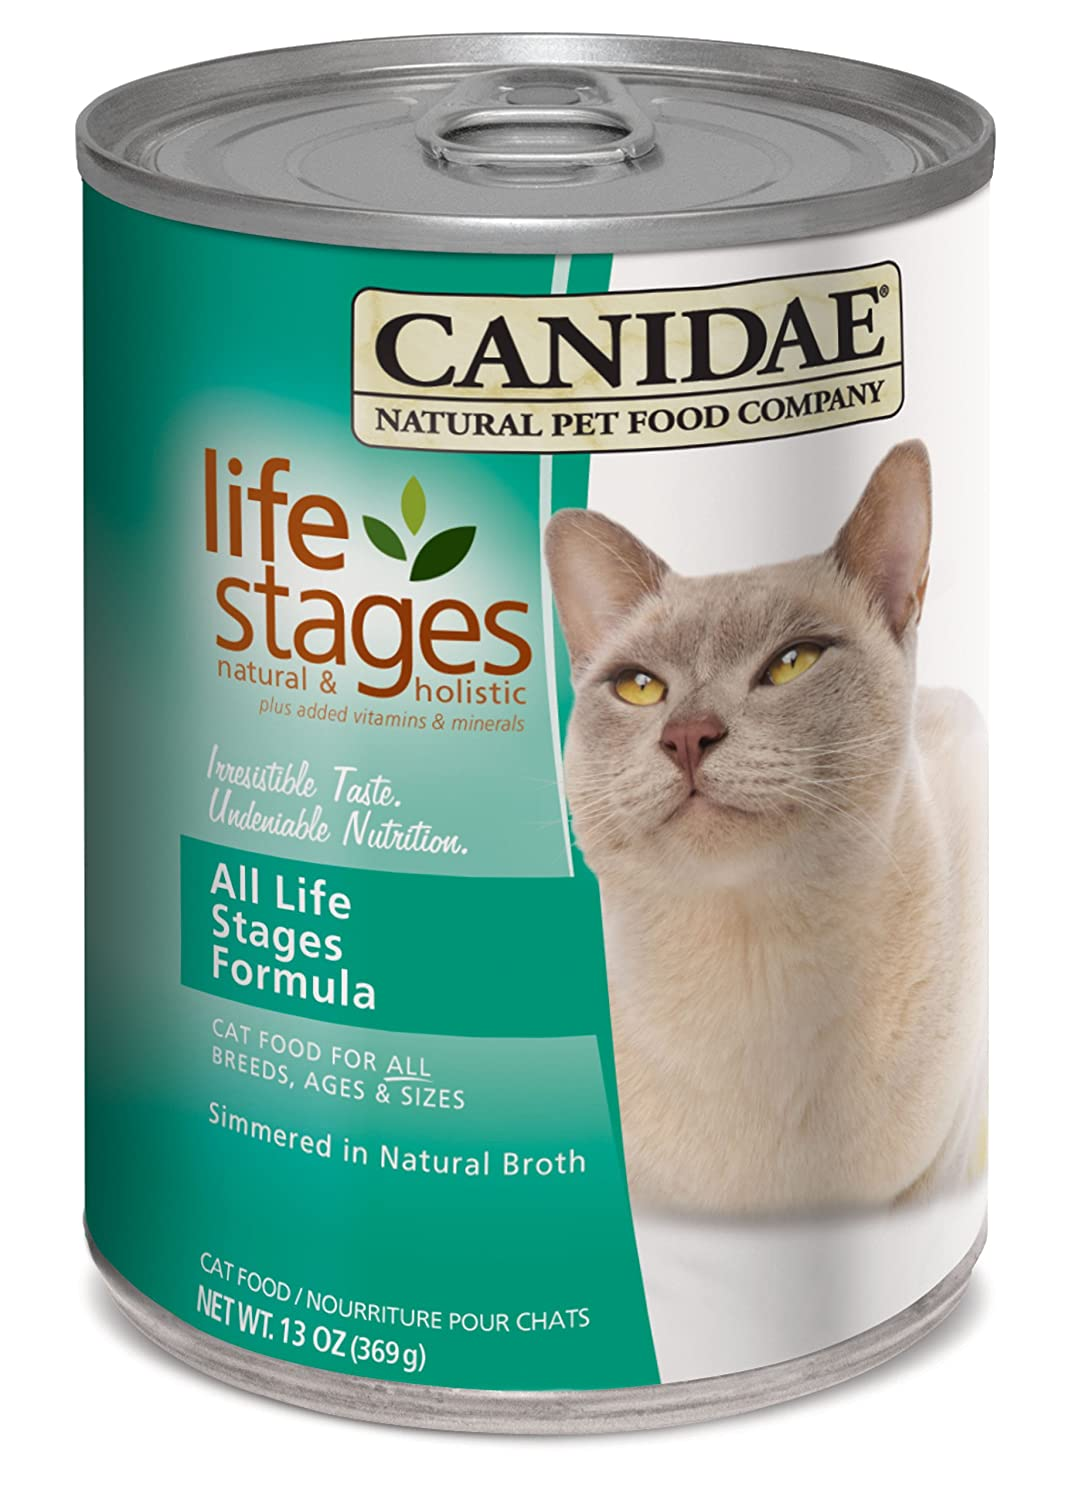 CANIDAE All Life Stages Can Formula for Cats, 12-Pack